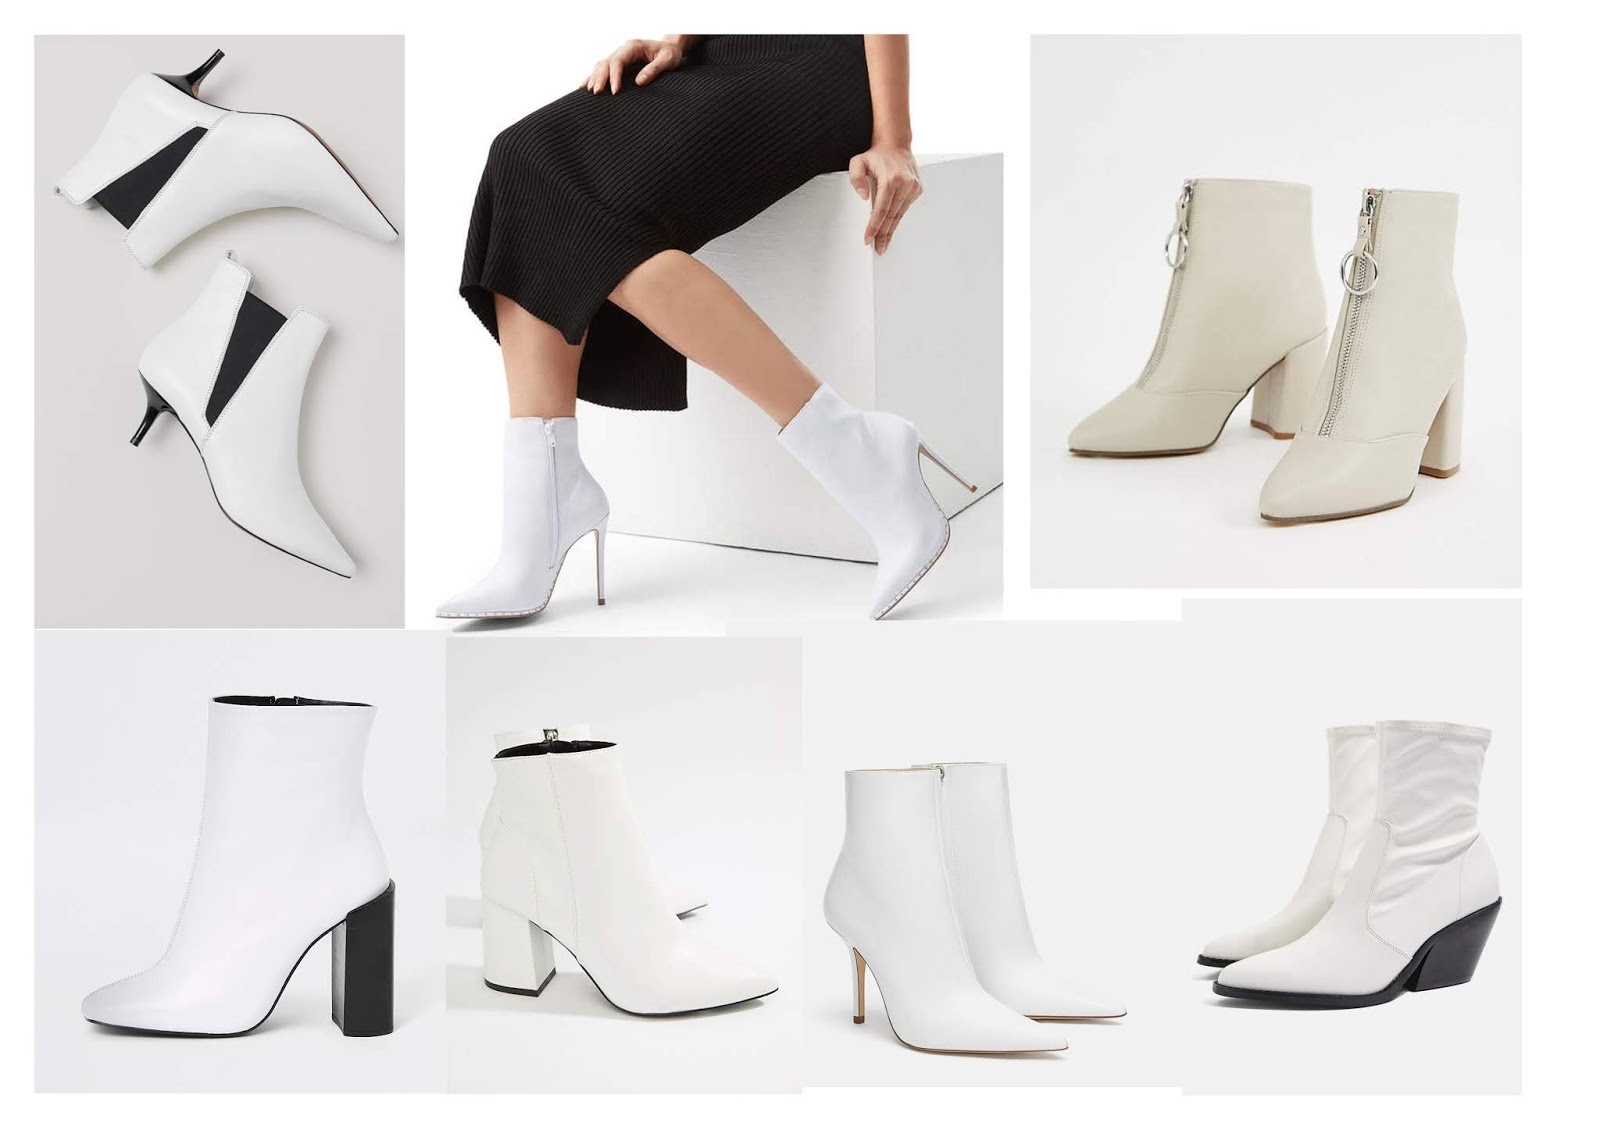 The White Ankle Boots Edit: The Fun Way To Finish Off Your Winter Outfits